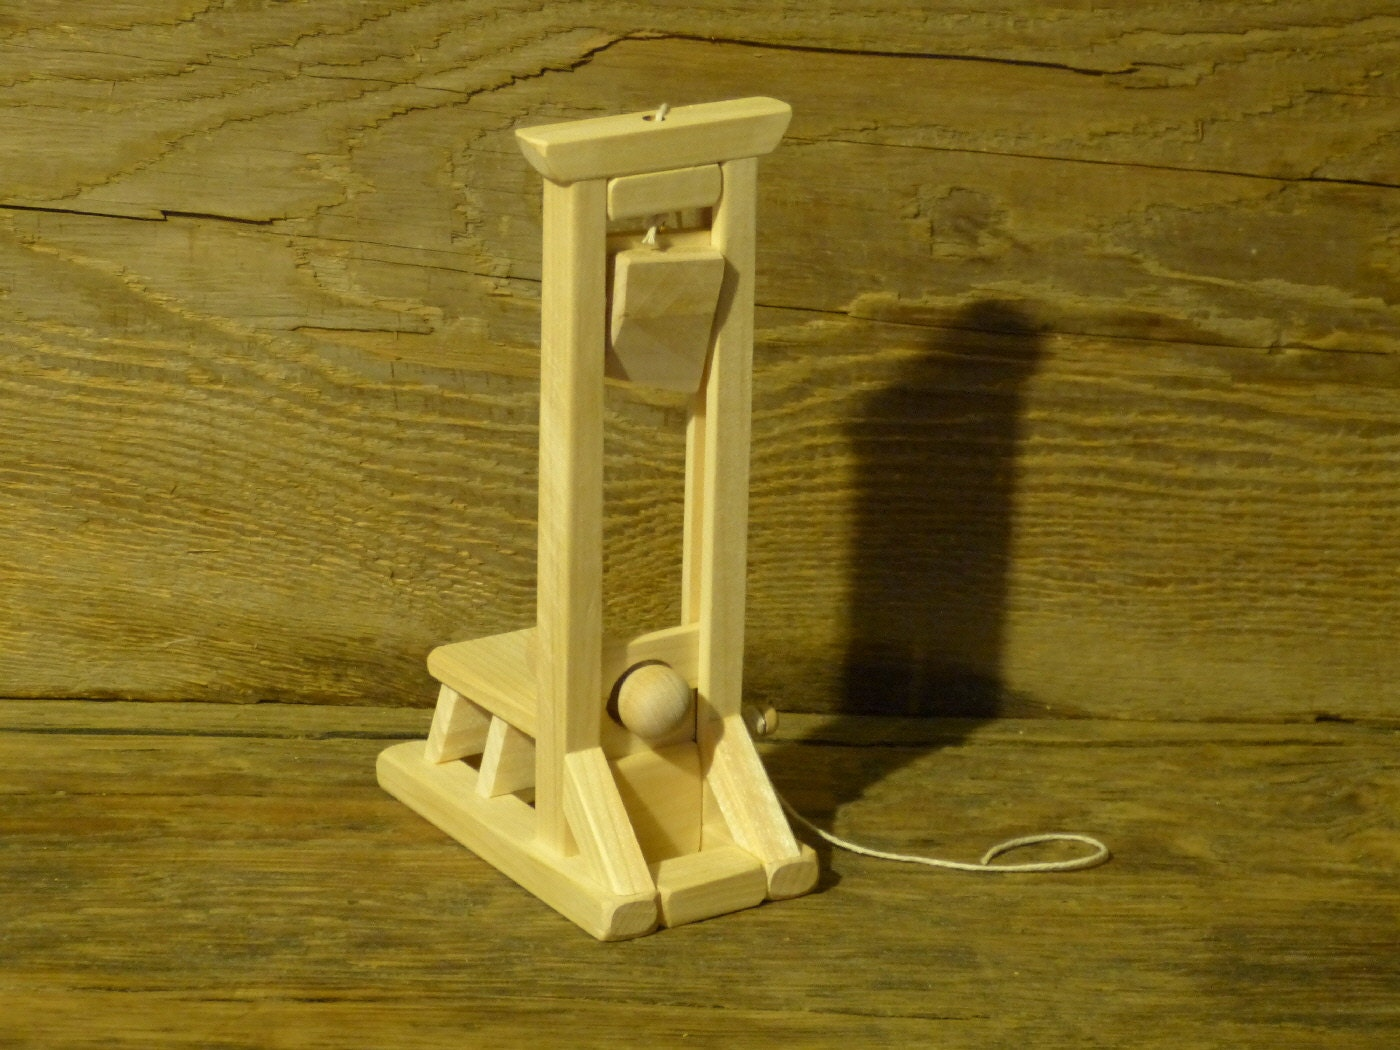 geekery wood toy guillotine halloween decor wooden toys man. Black Bedroom Furniture Sets. Home Design Ideas